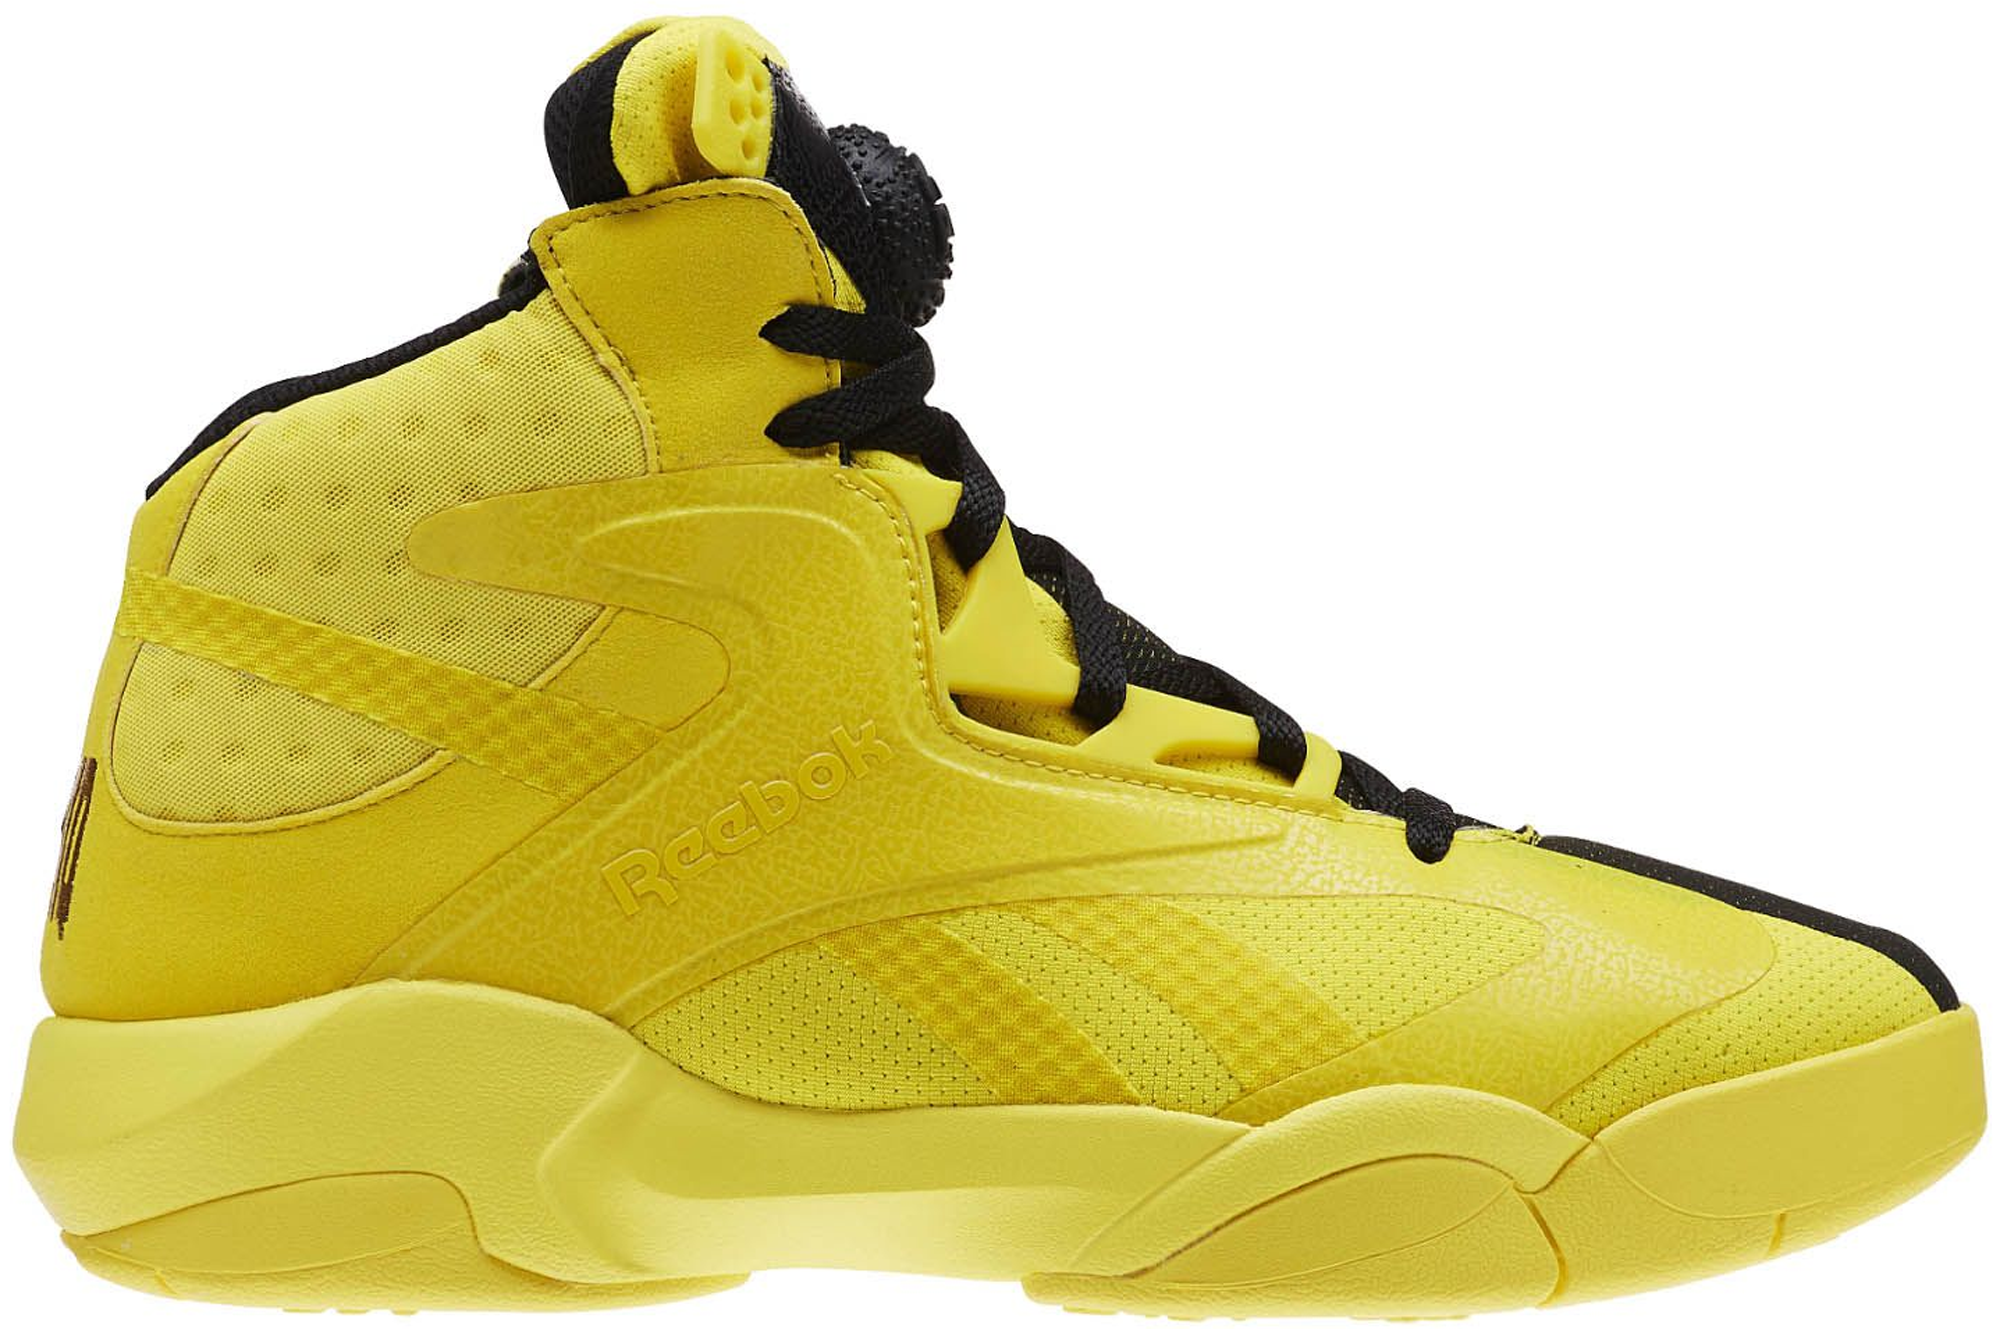 99eaf44479e Reebok Shaq Attaq Modern Yellow Spark Black - StockX News